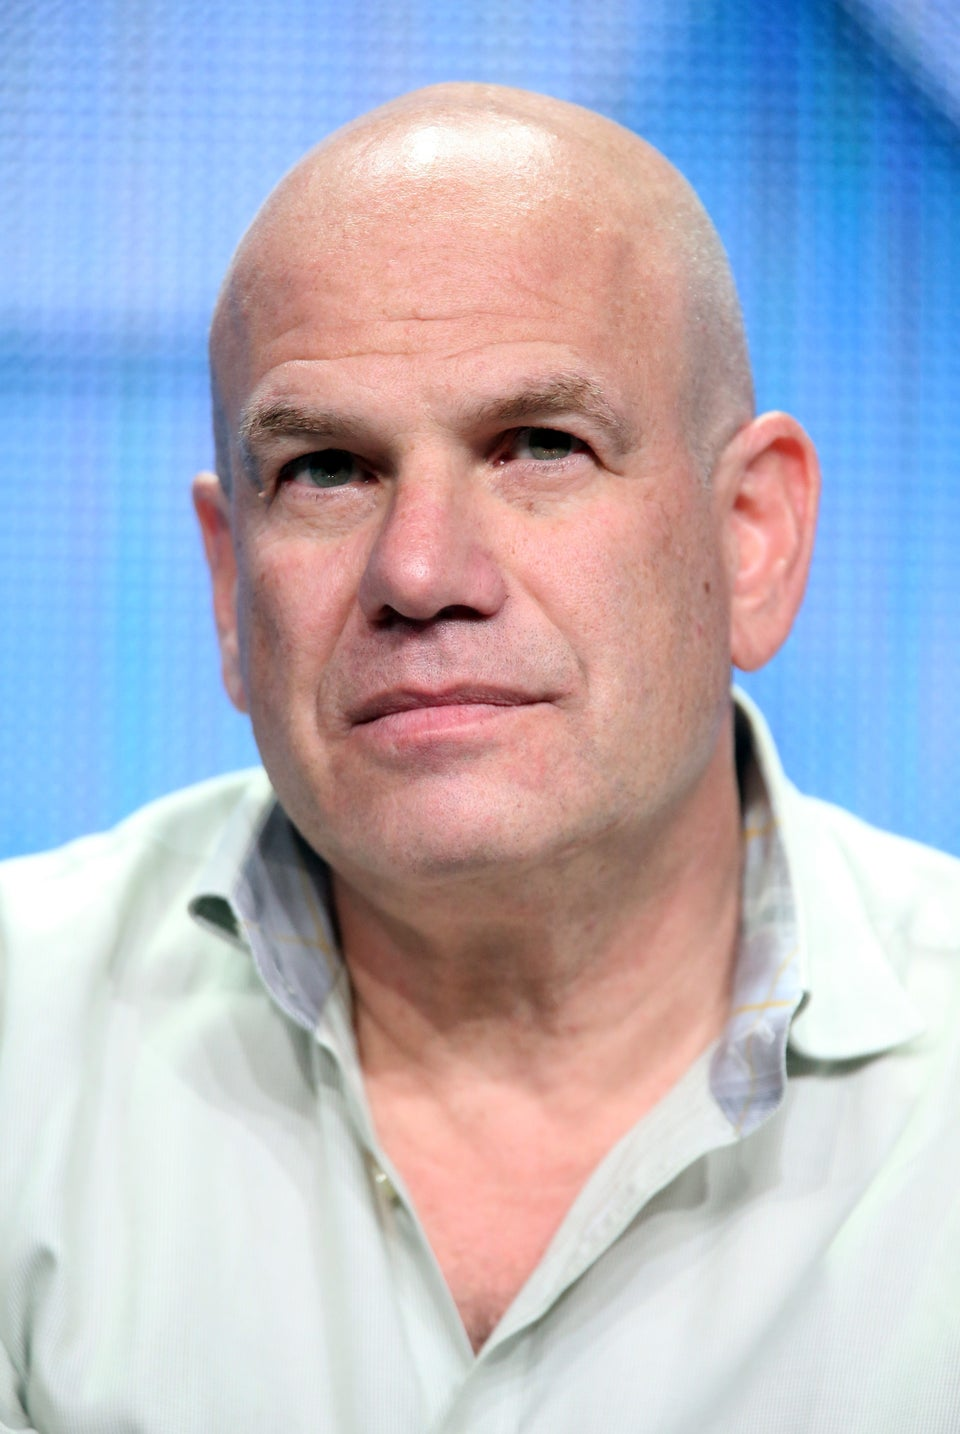 David Simon Using The N-Word Is A Prime Example Of When White Allyship Goes Wrong